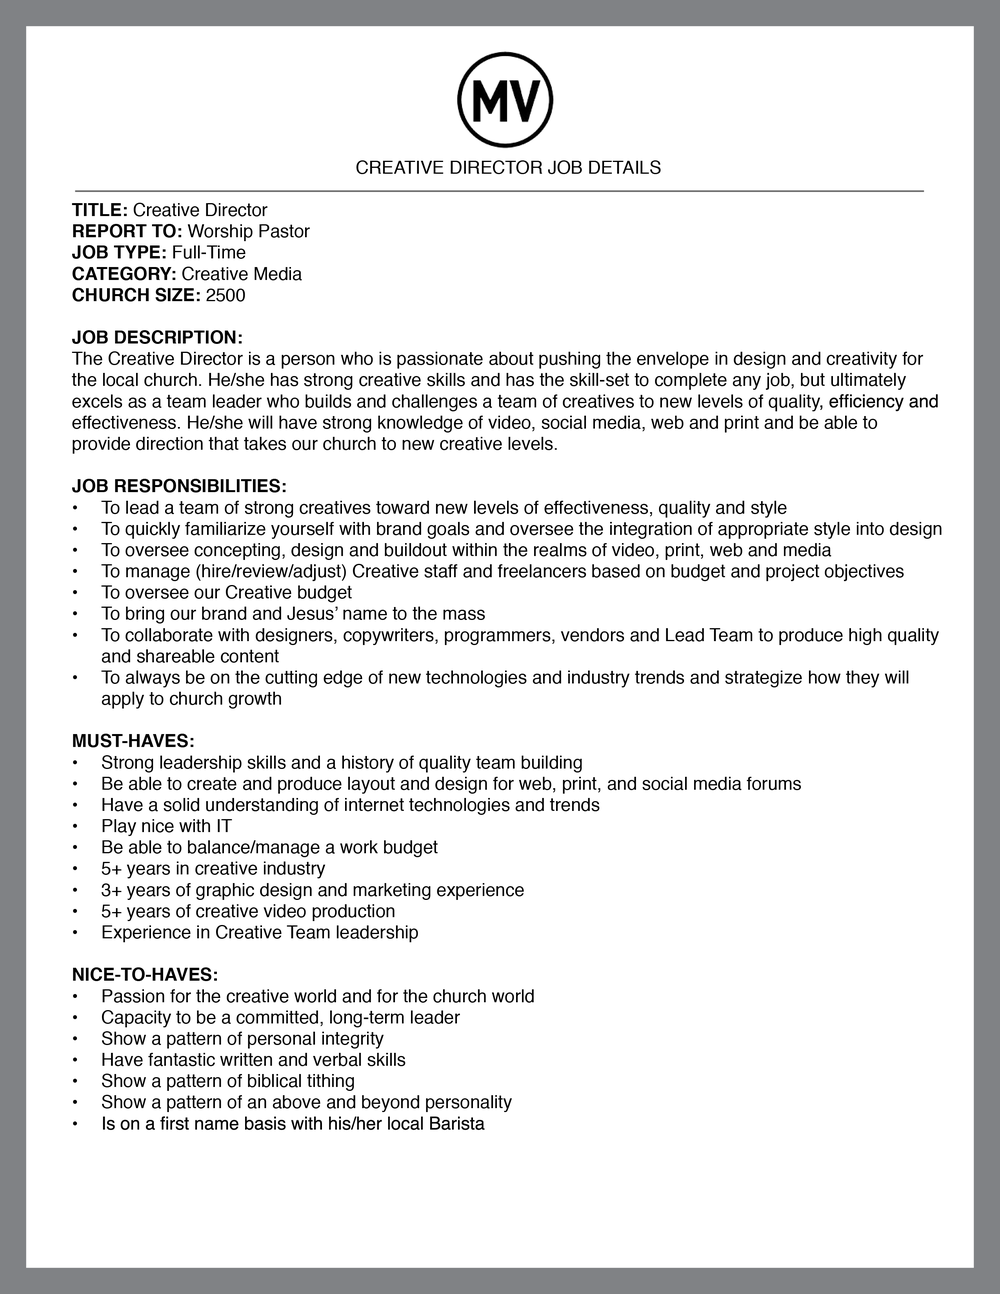 MV.Church Creative Director Job Opening.png